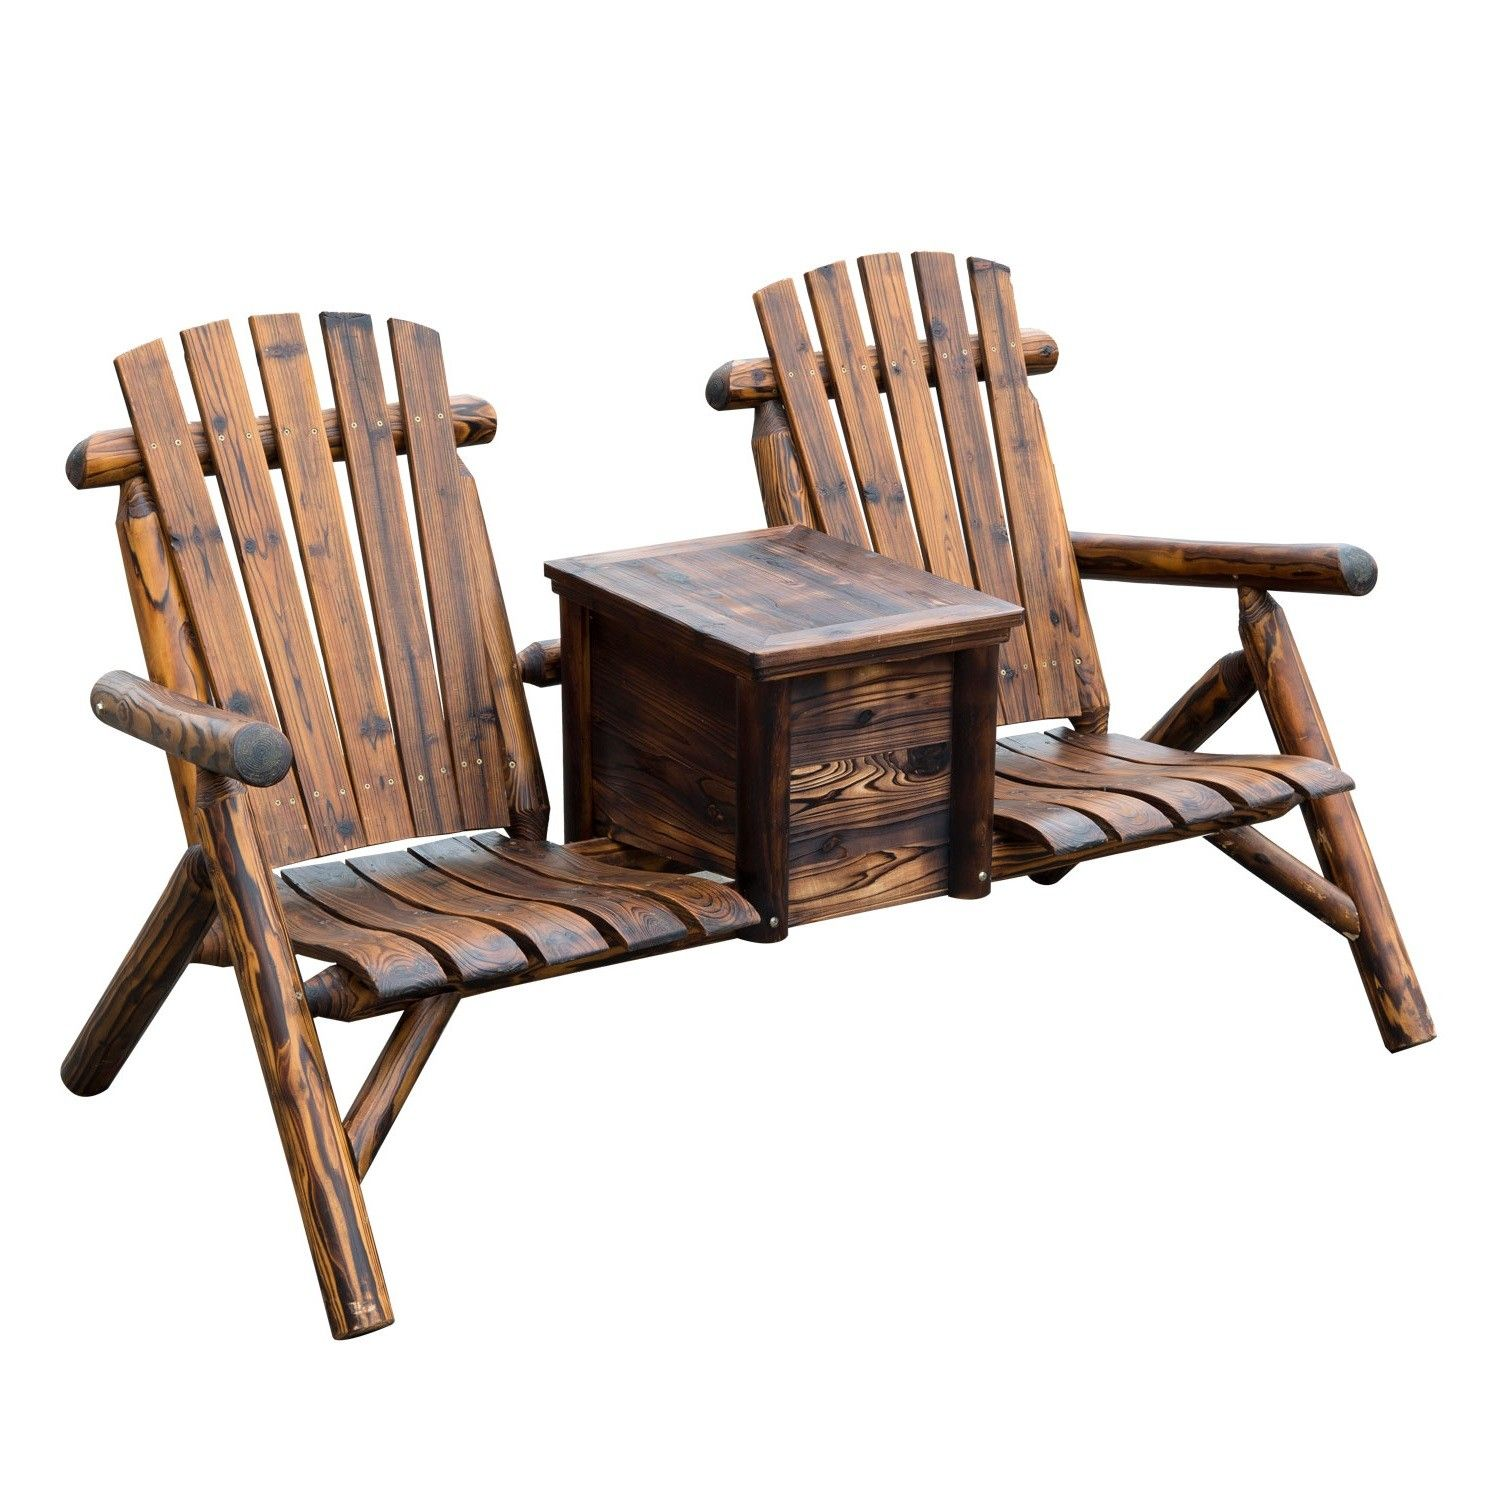 Outsunny Wooden Double Adirondack Chair Loveseat With Ice